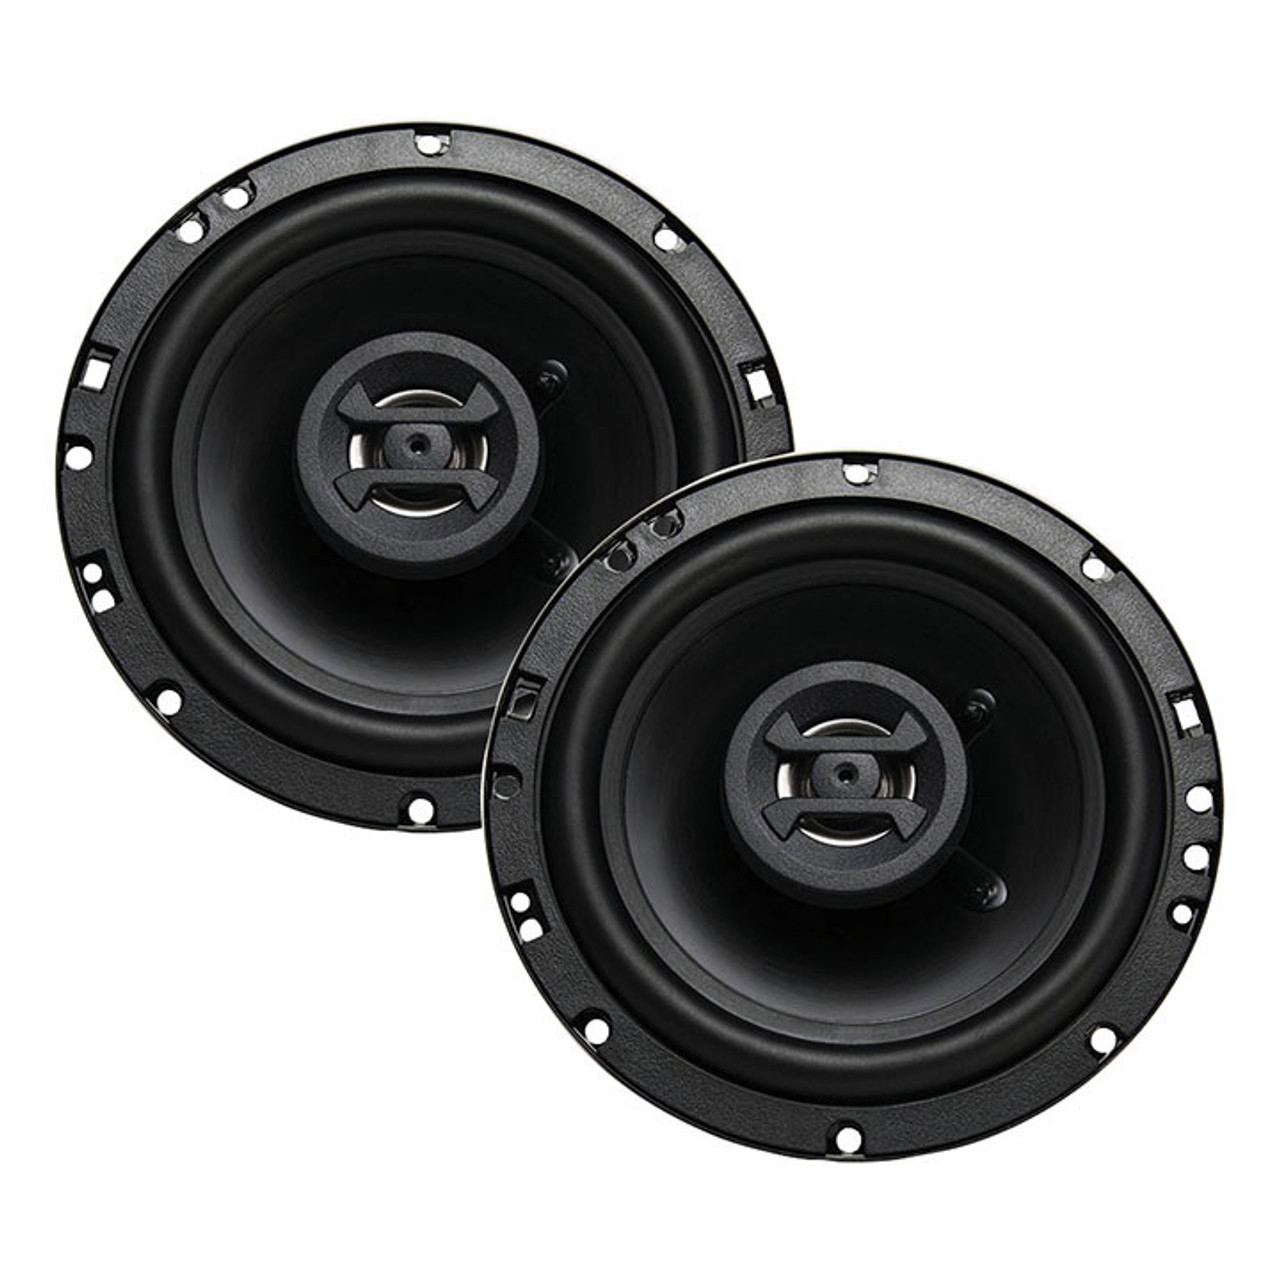 Hifonics ZS653 Zeus 6.5 3-Way